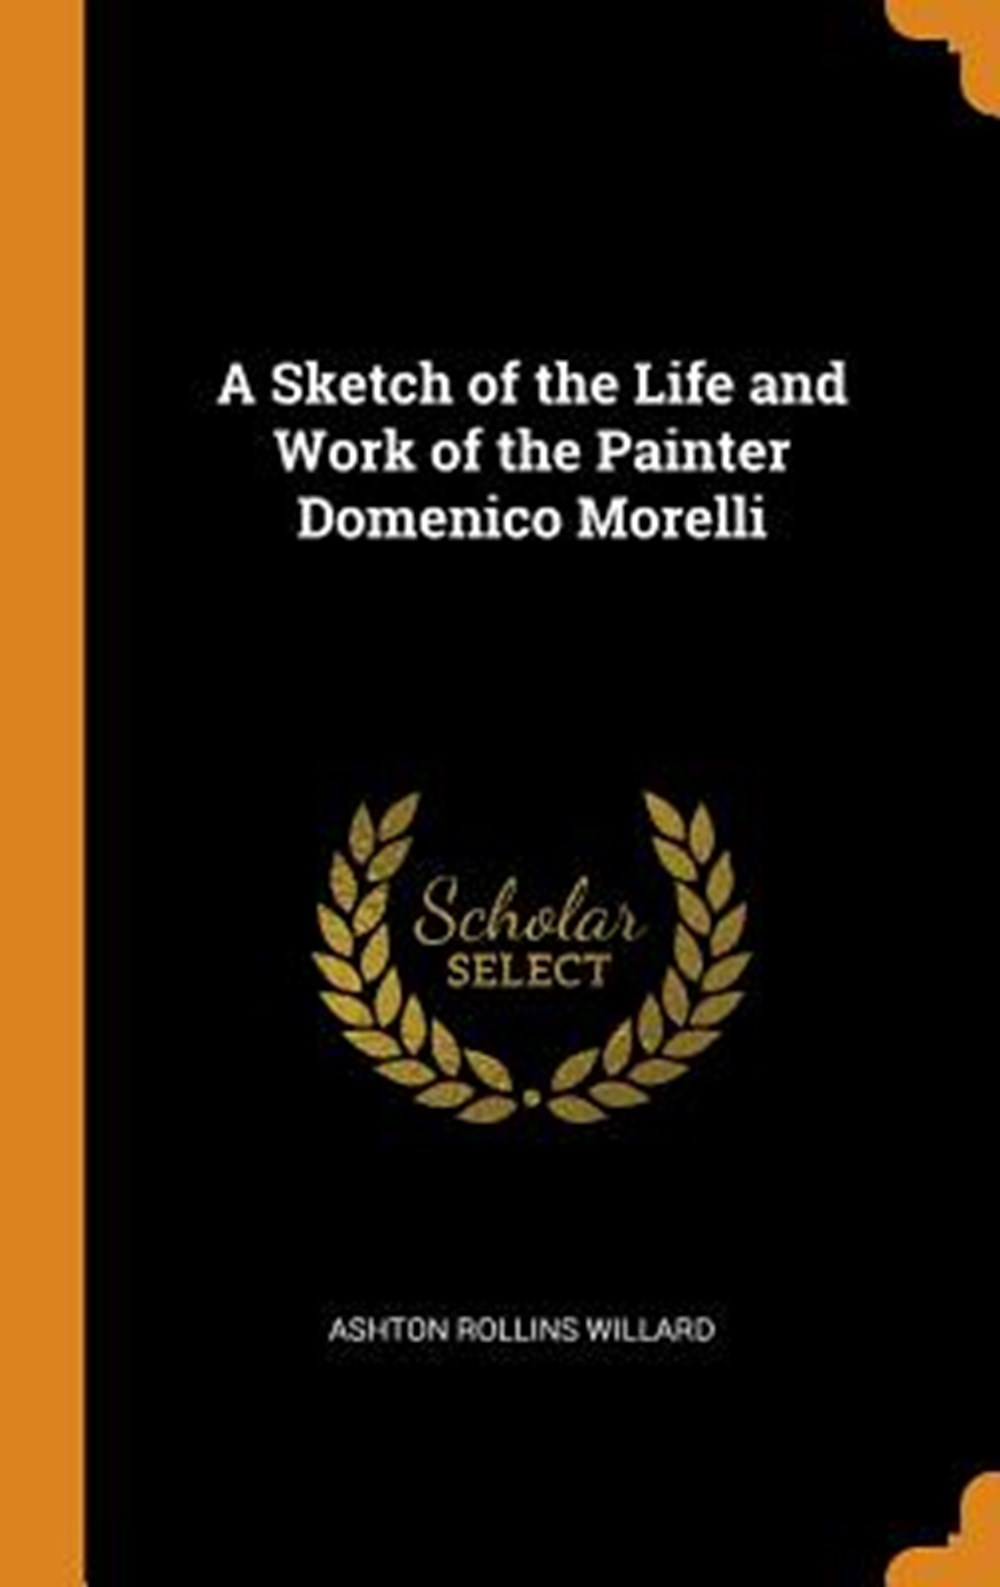 Sketch of the Life and Work of the Painter Domenico Morelli